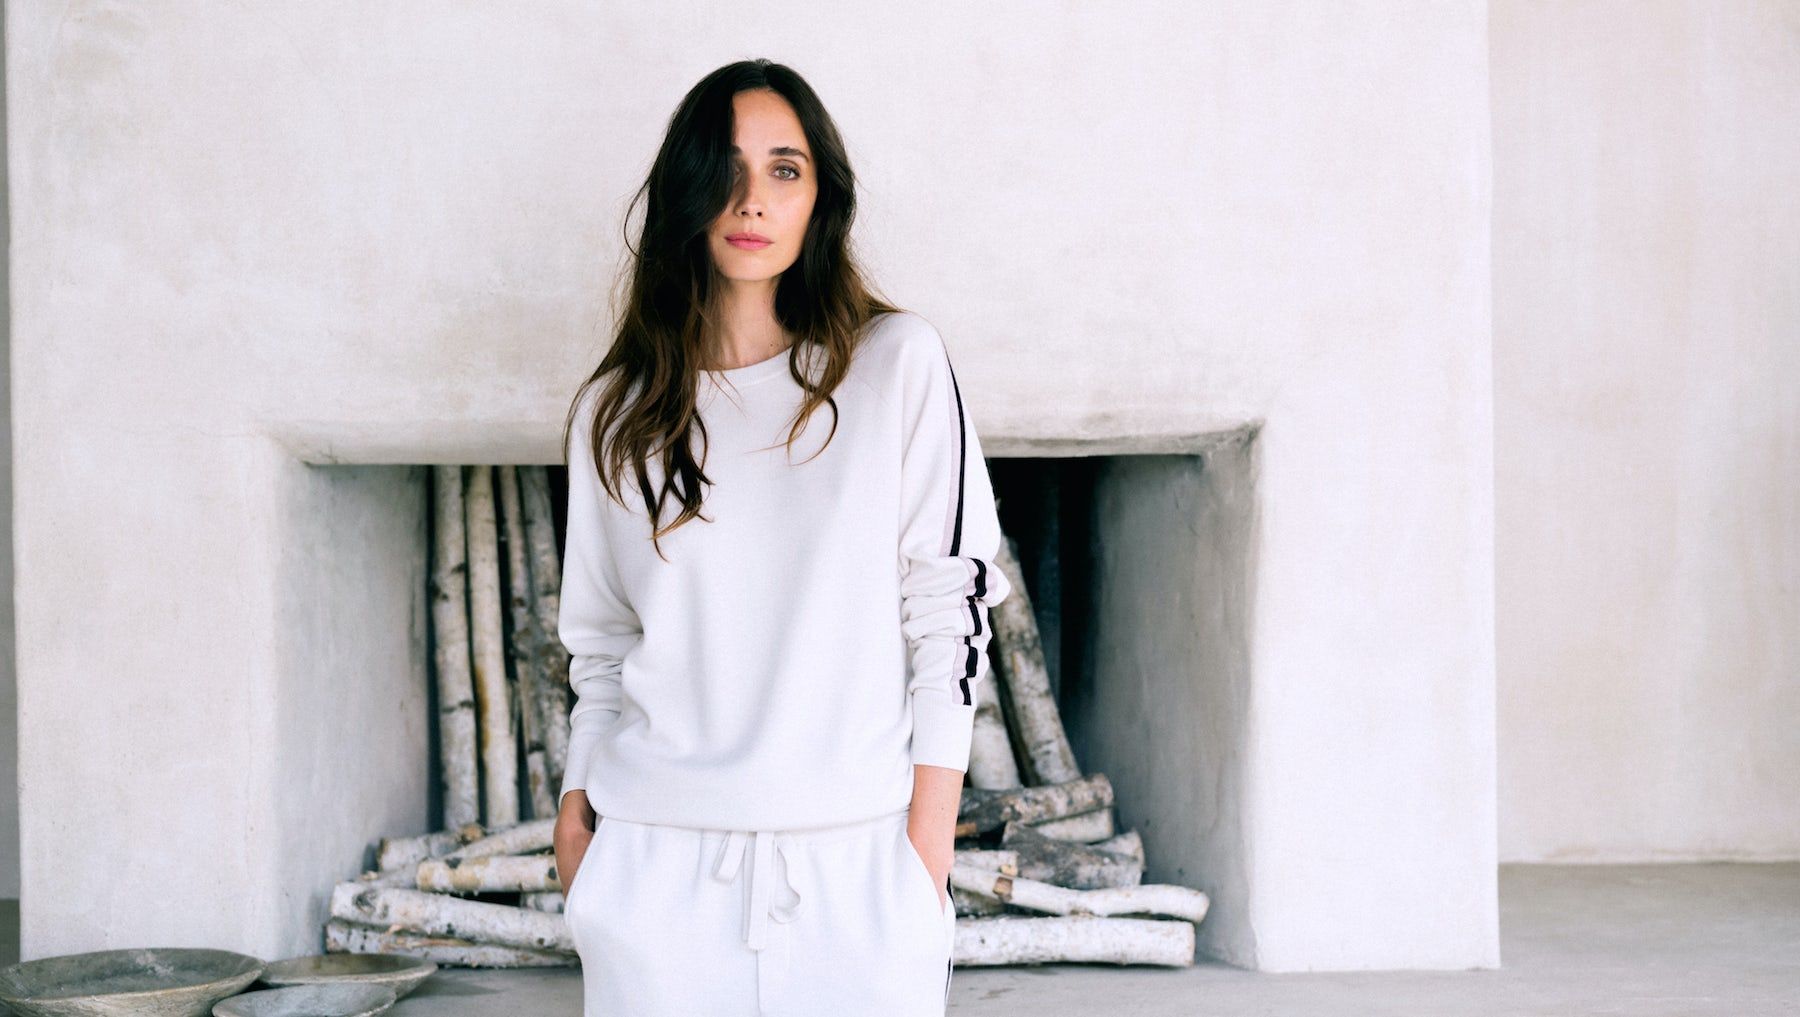 Made to Travel: Luxury Loungewear Takes Off